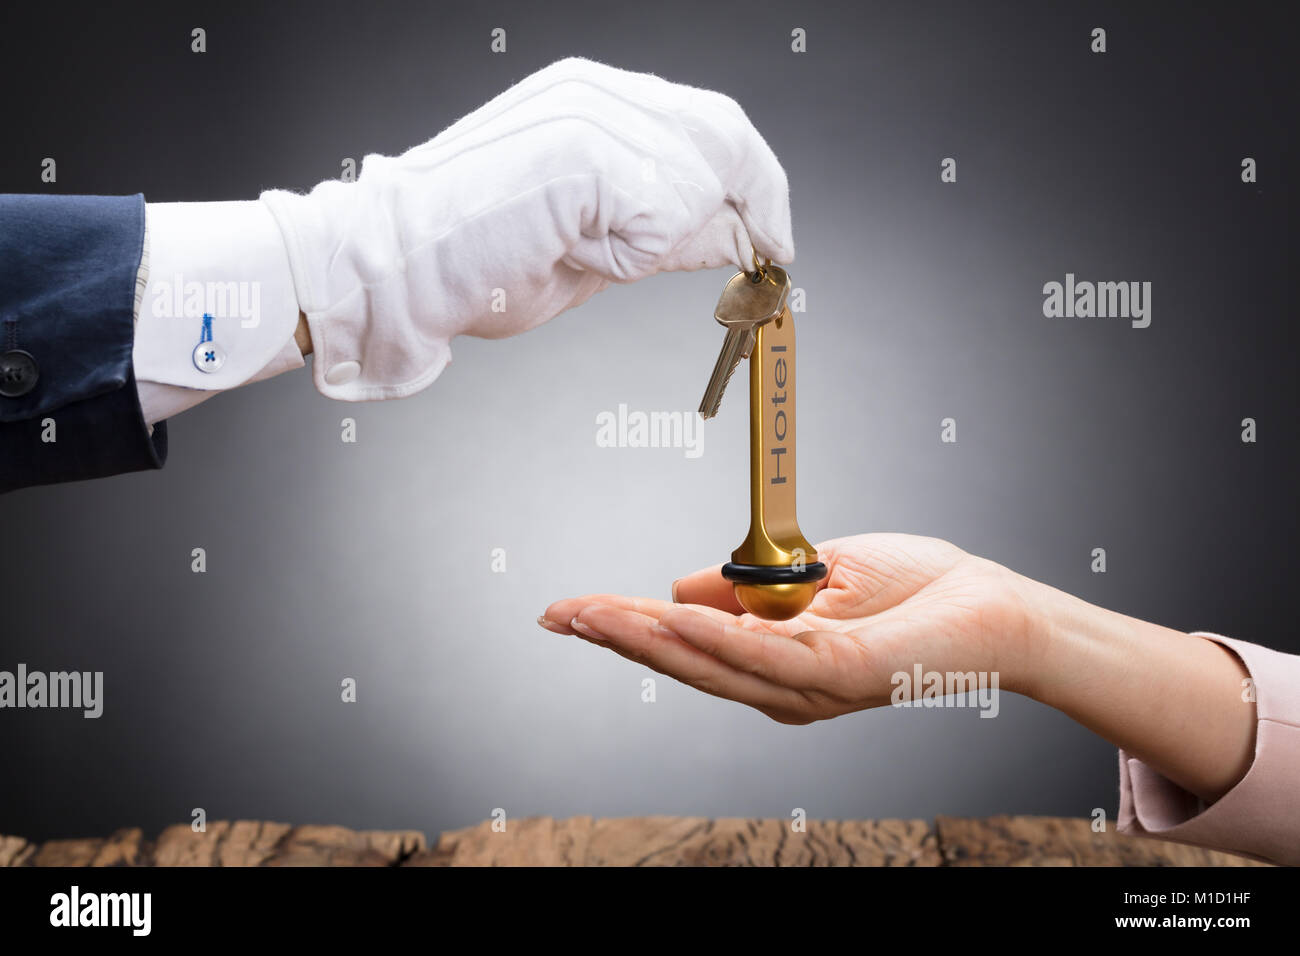 Close-up Of A Receptionist's Hand Giving Hotel Door Key To Customer - Stock Image